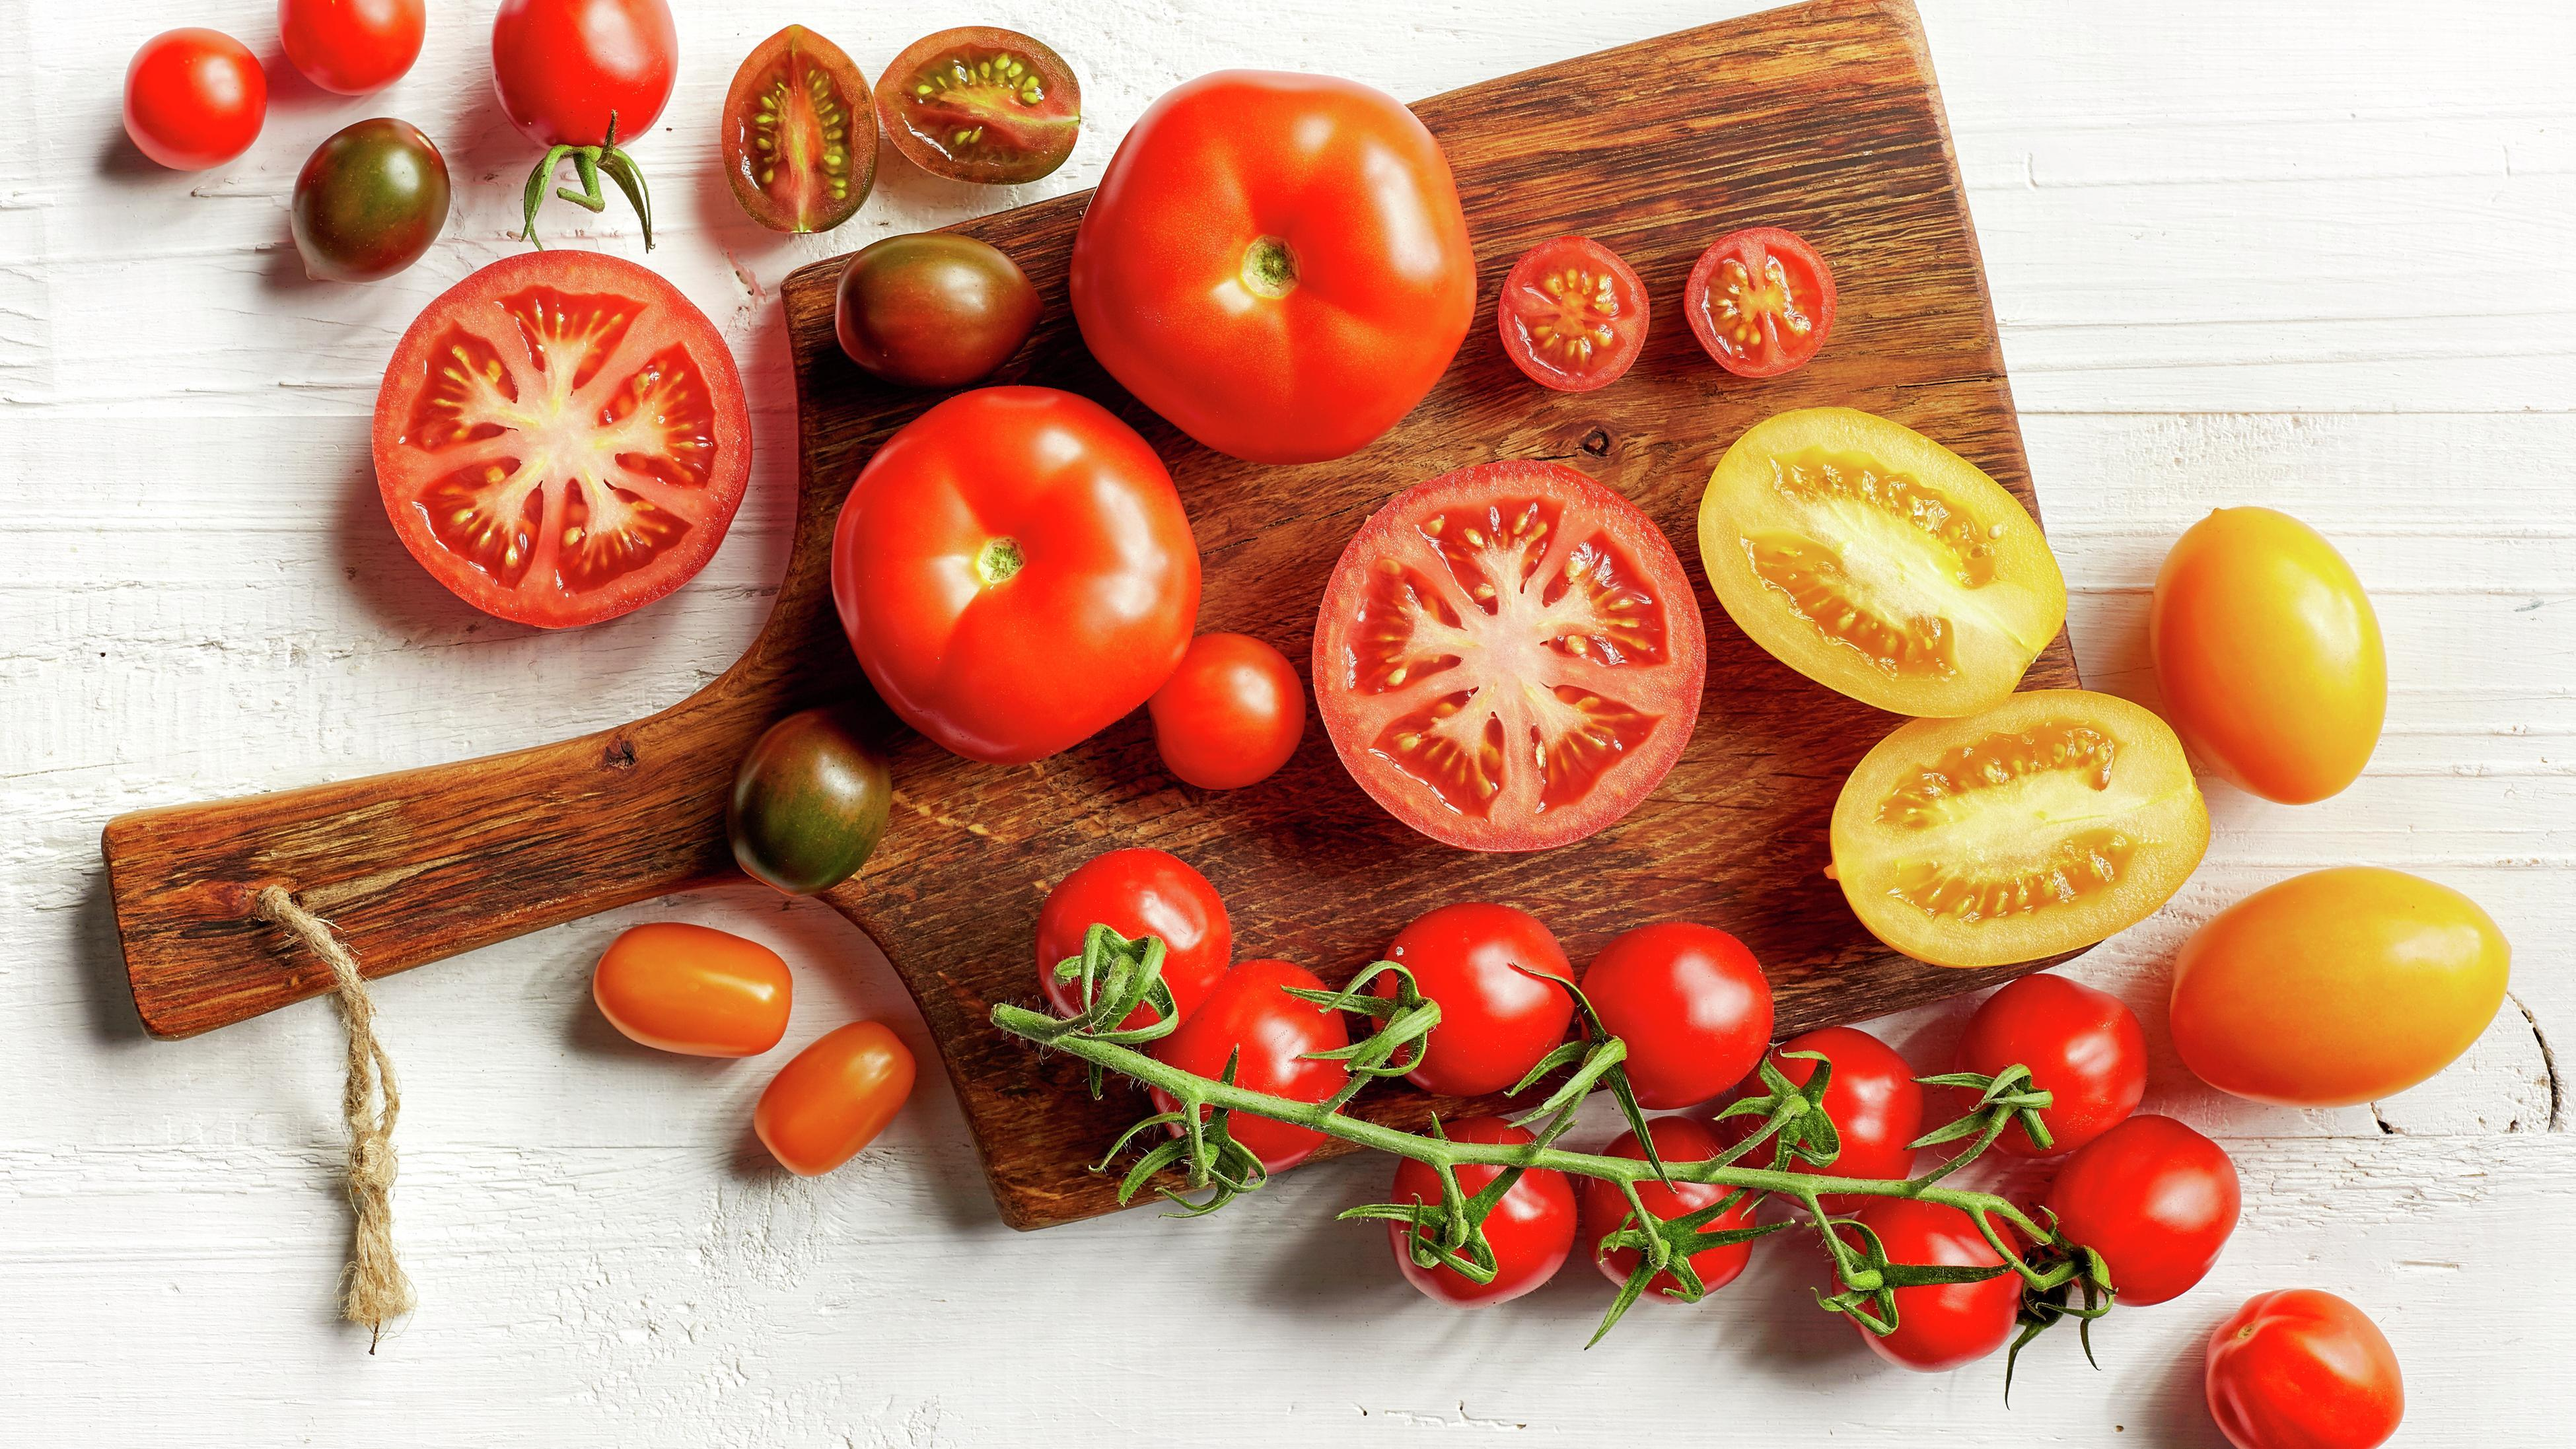 A variety of tomatoes on a chopping board